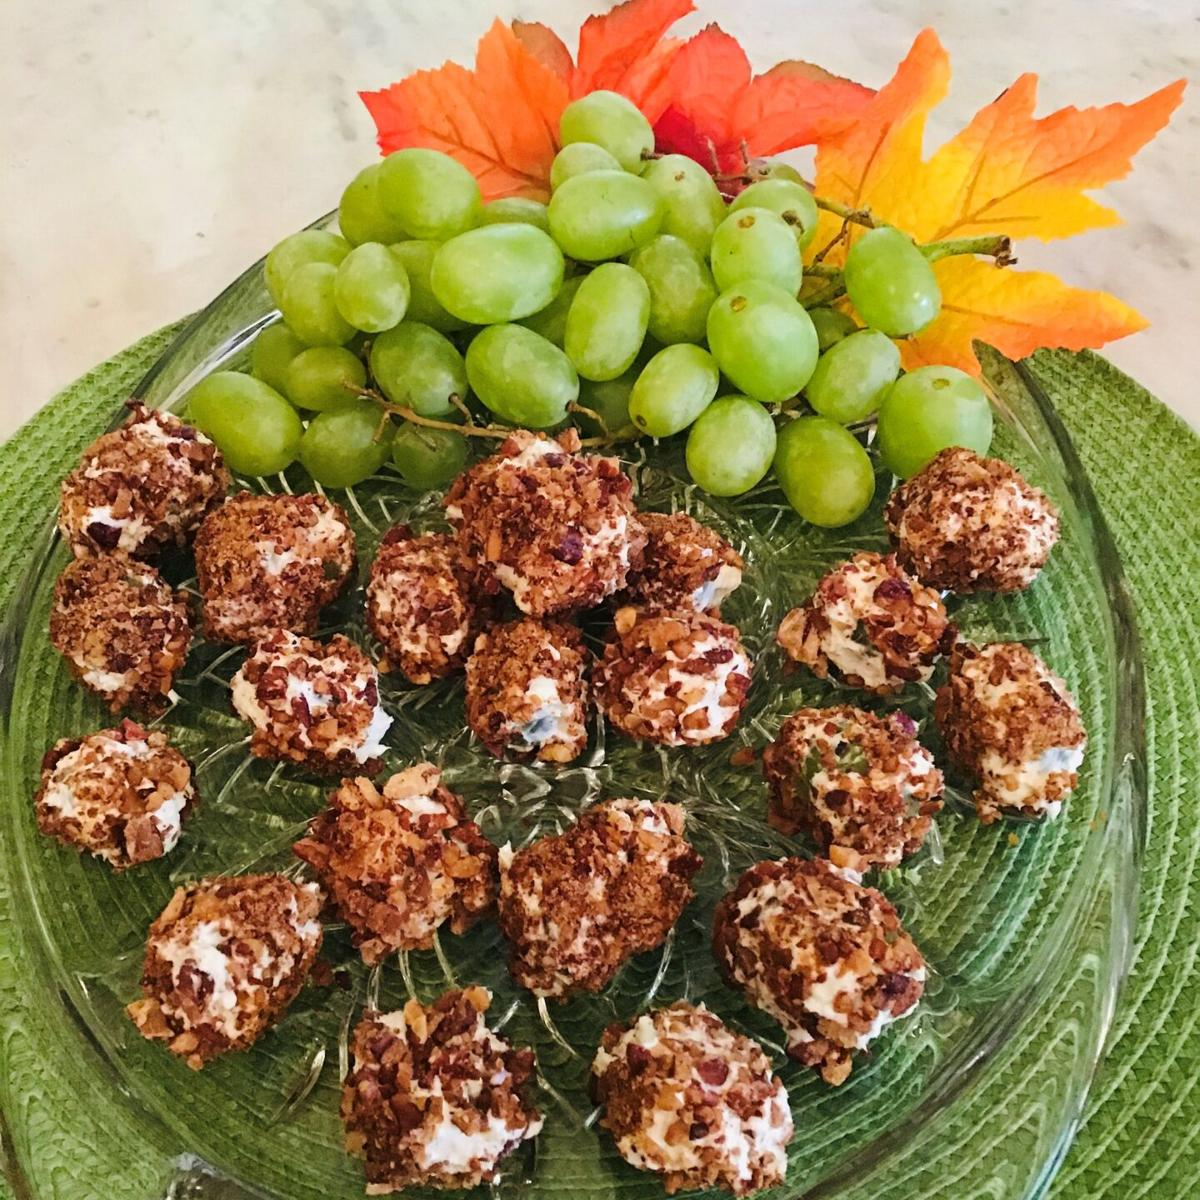 Roquefort Grapes rolled in Toasted Pecans